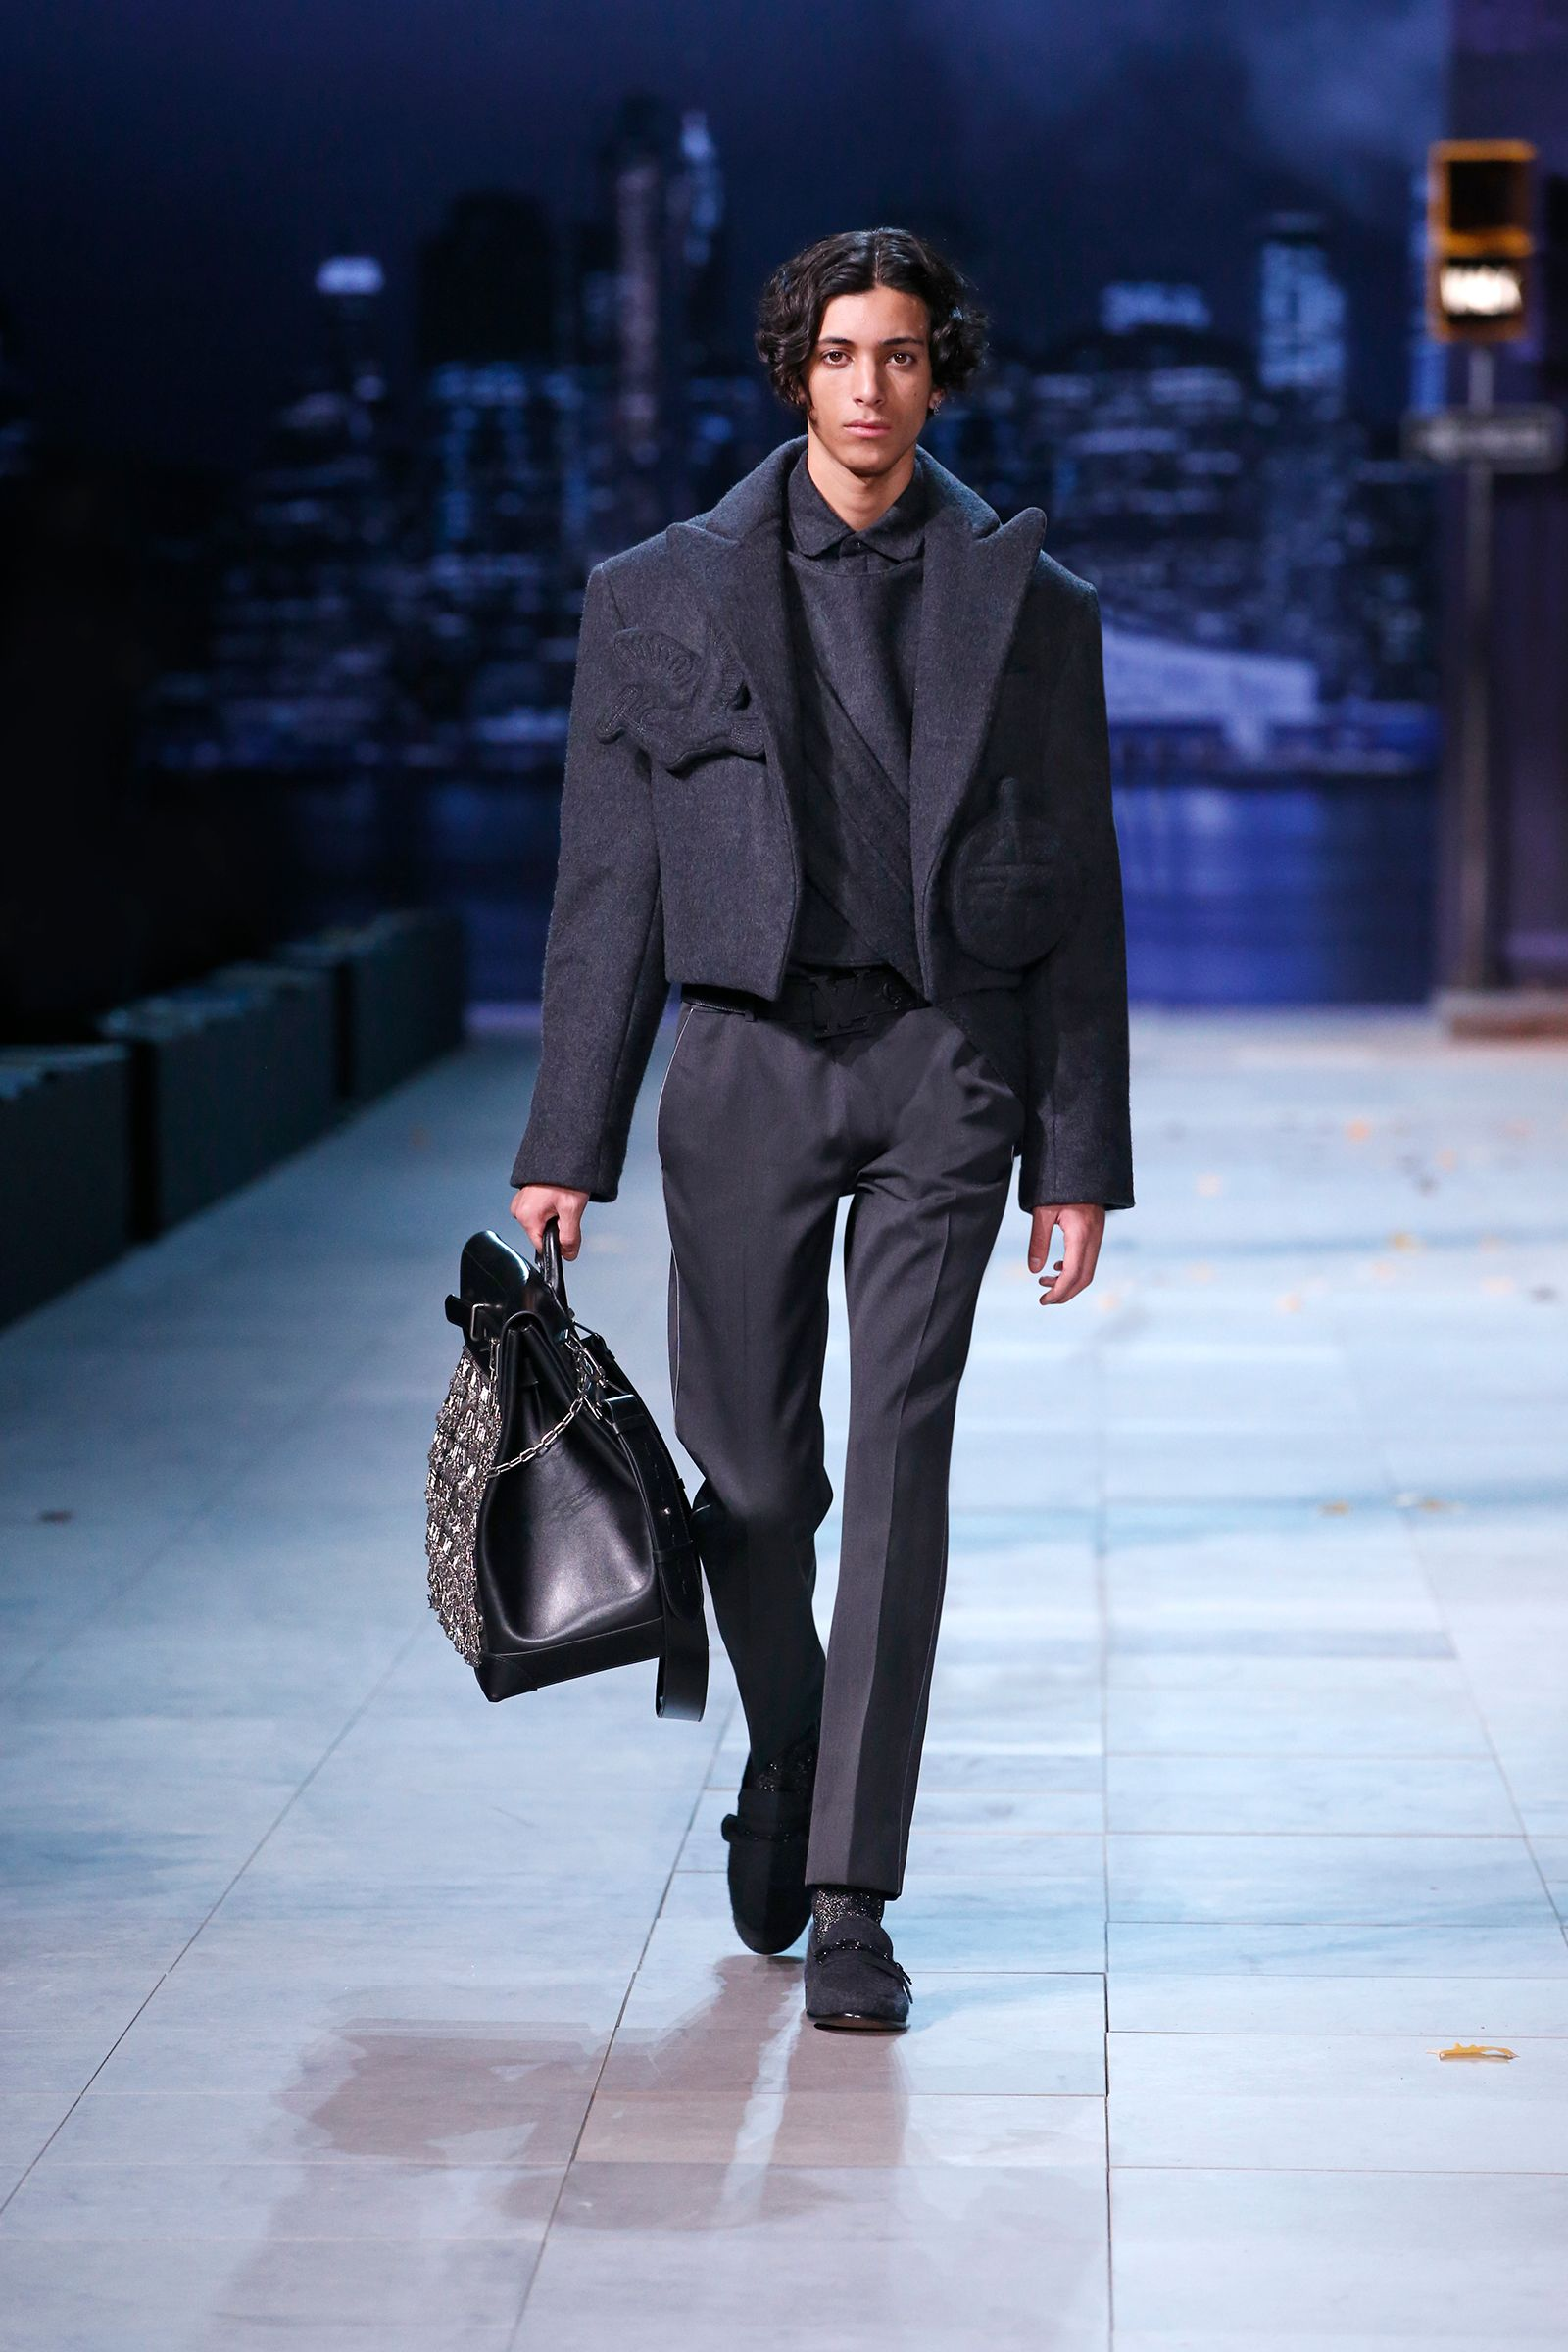 b11070a27f A look from the Louis Vuitton Men's Fall-Winter 2019 Fashion Show by ...